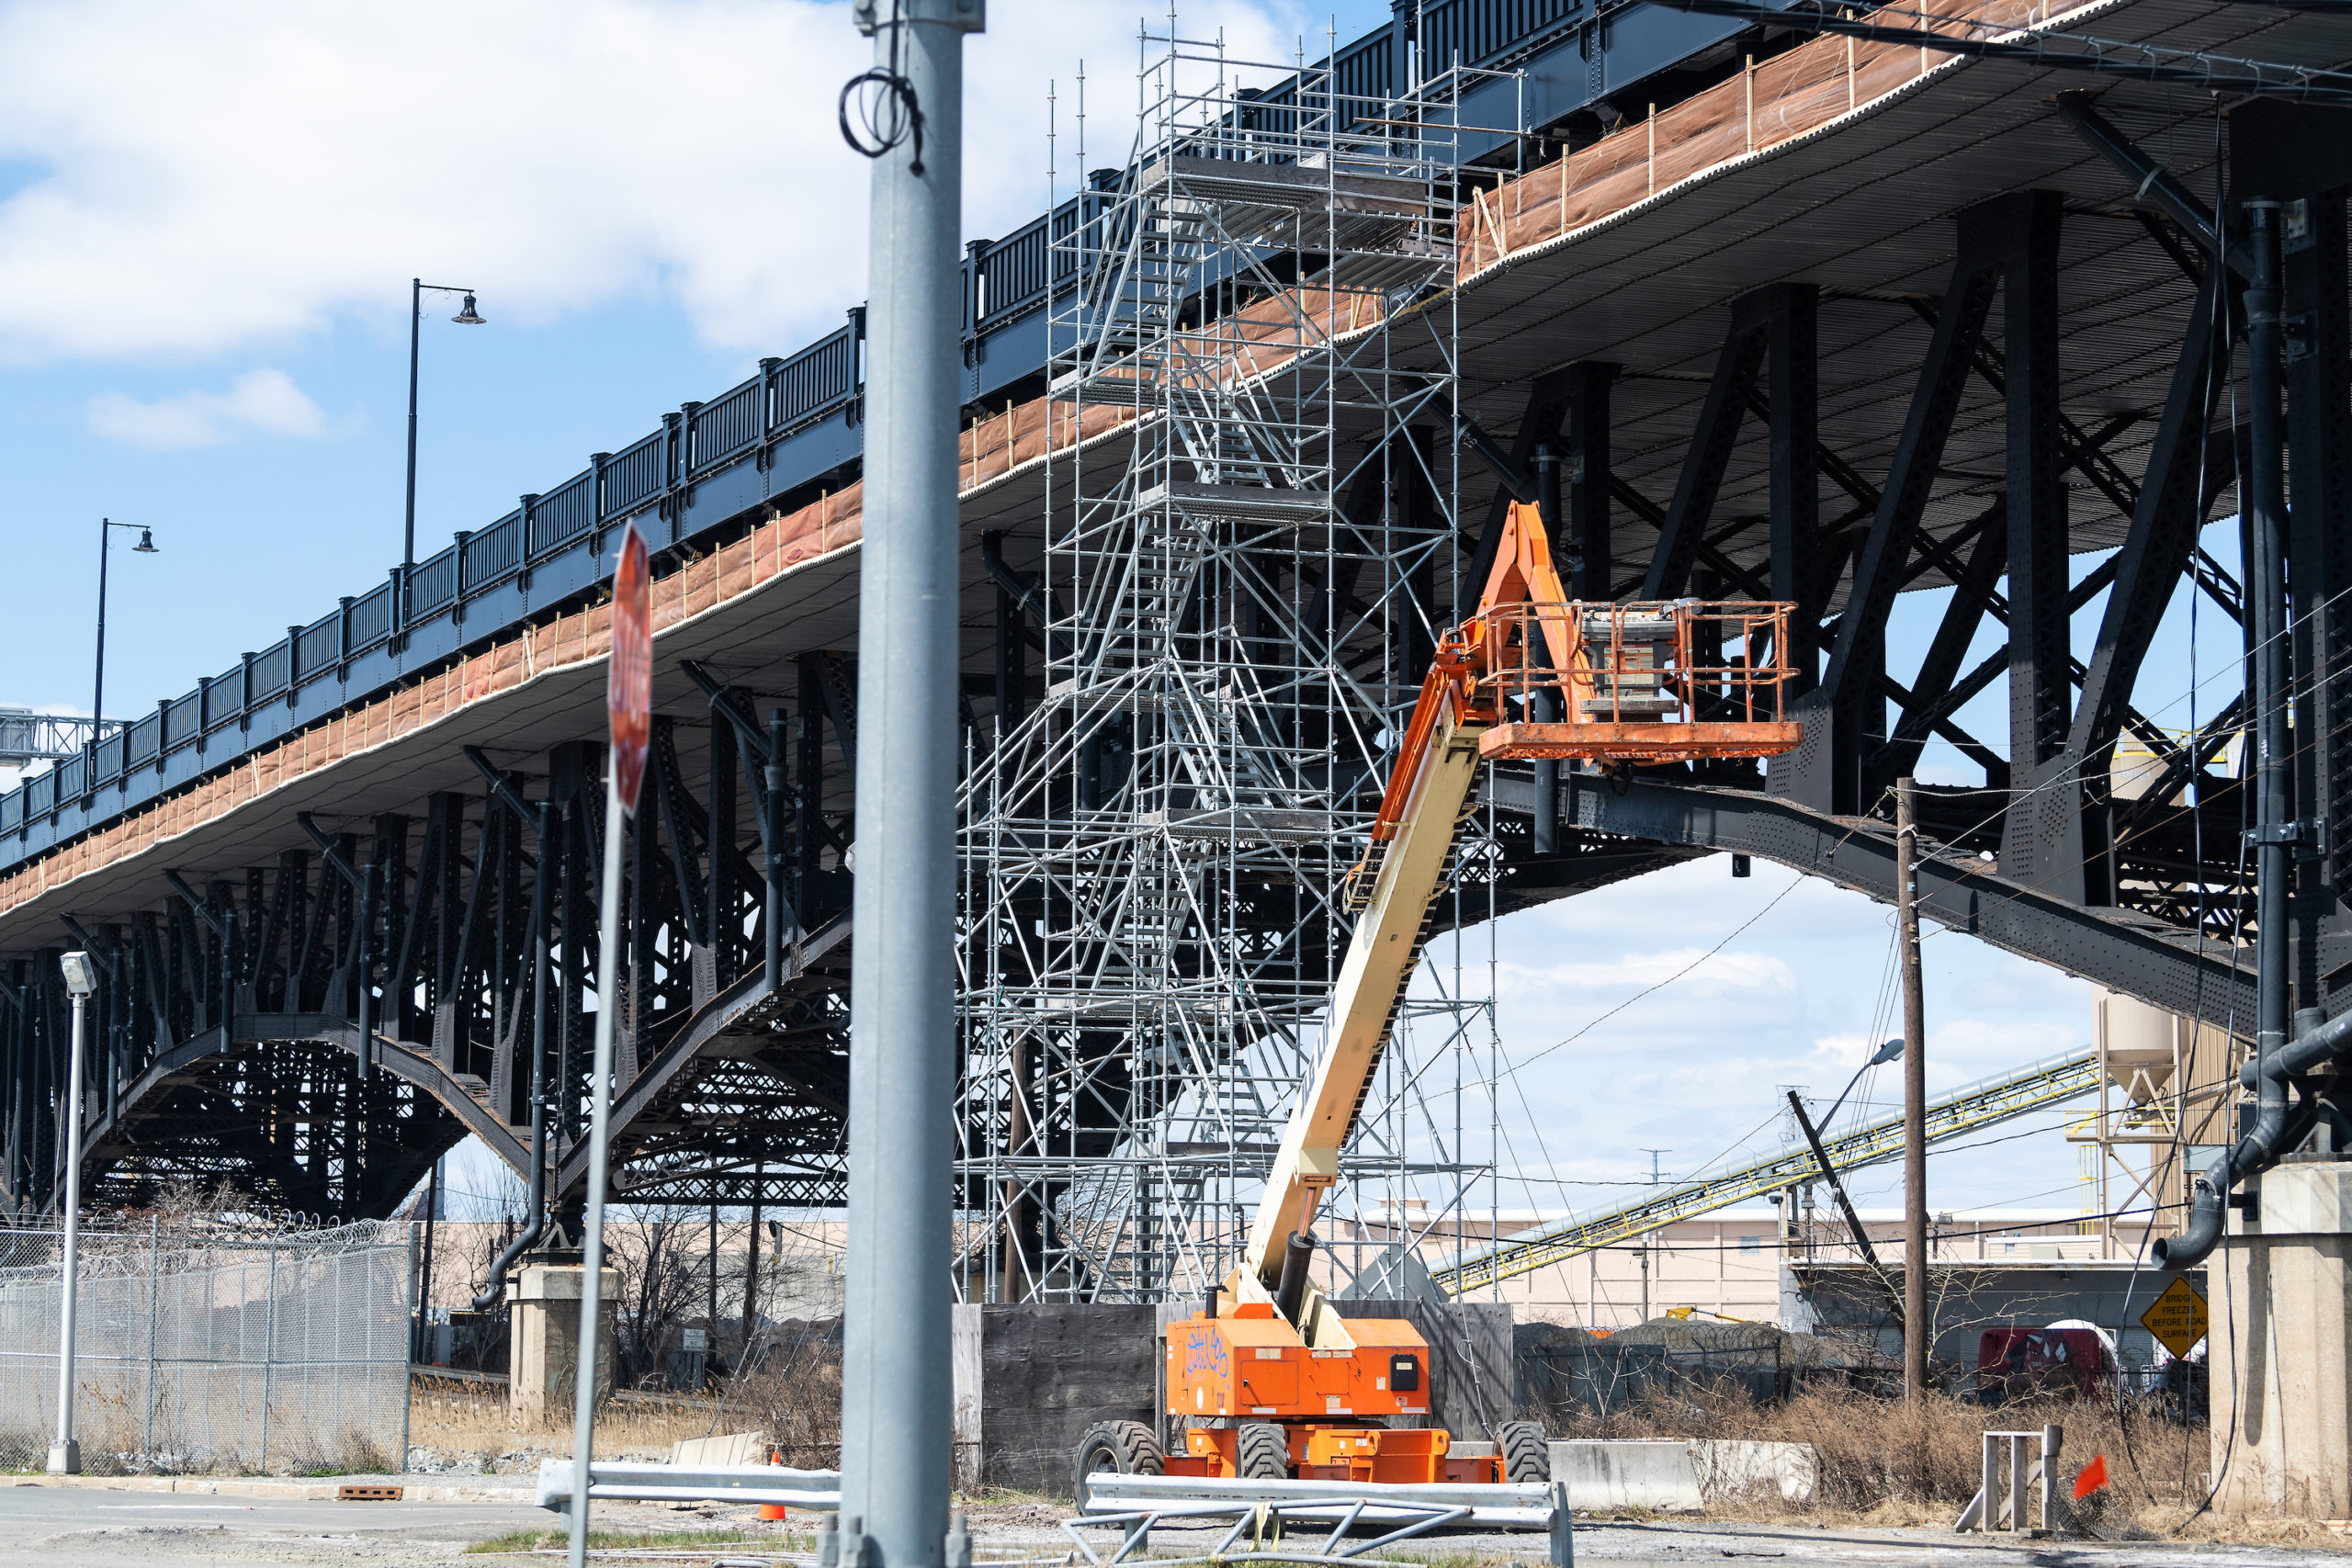 construction lien concept Jersey City, USA - April 6, 2018: Industrial view in downtown city area in New Jersey with construction on bridge